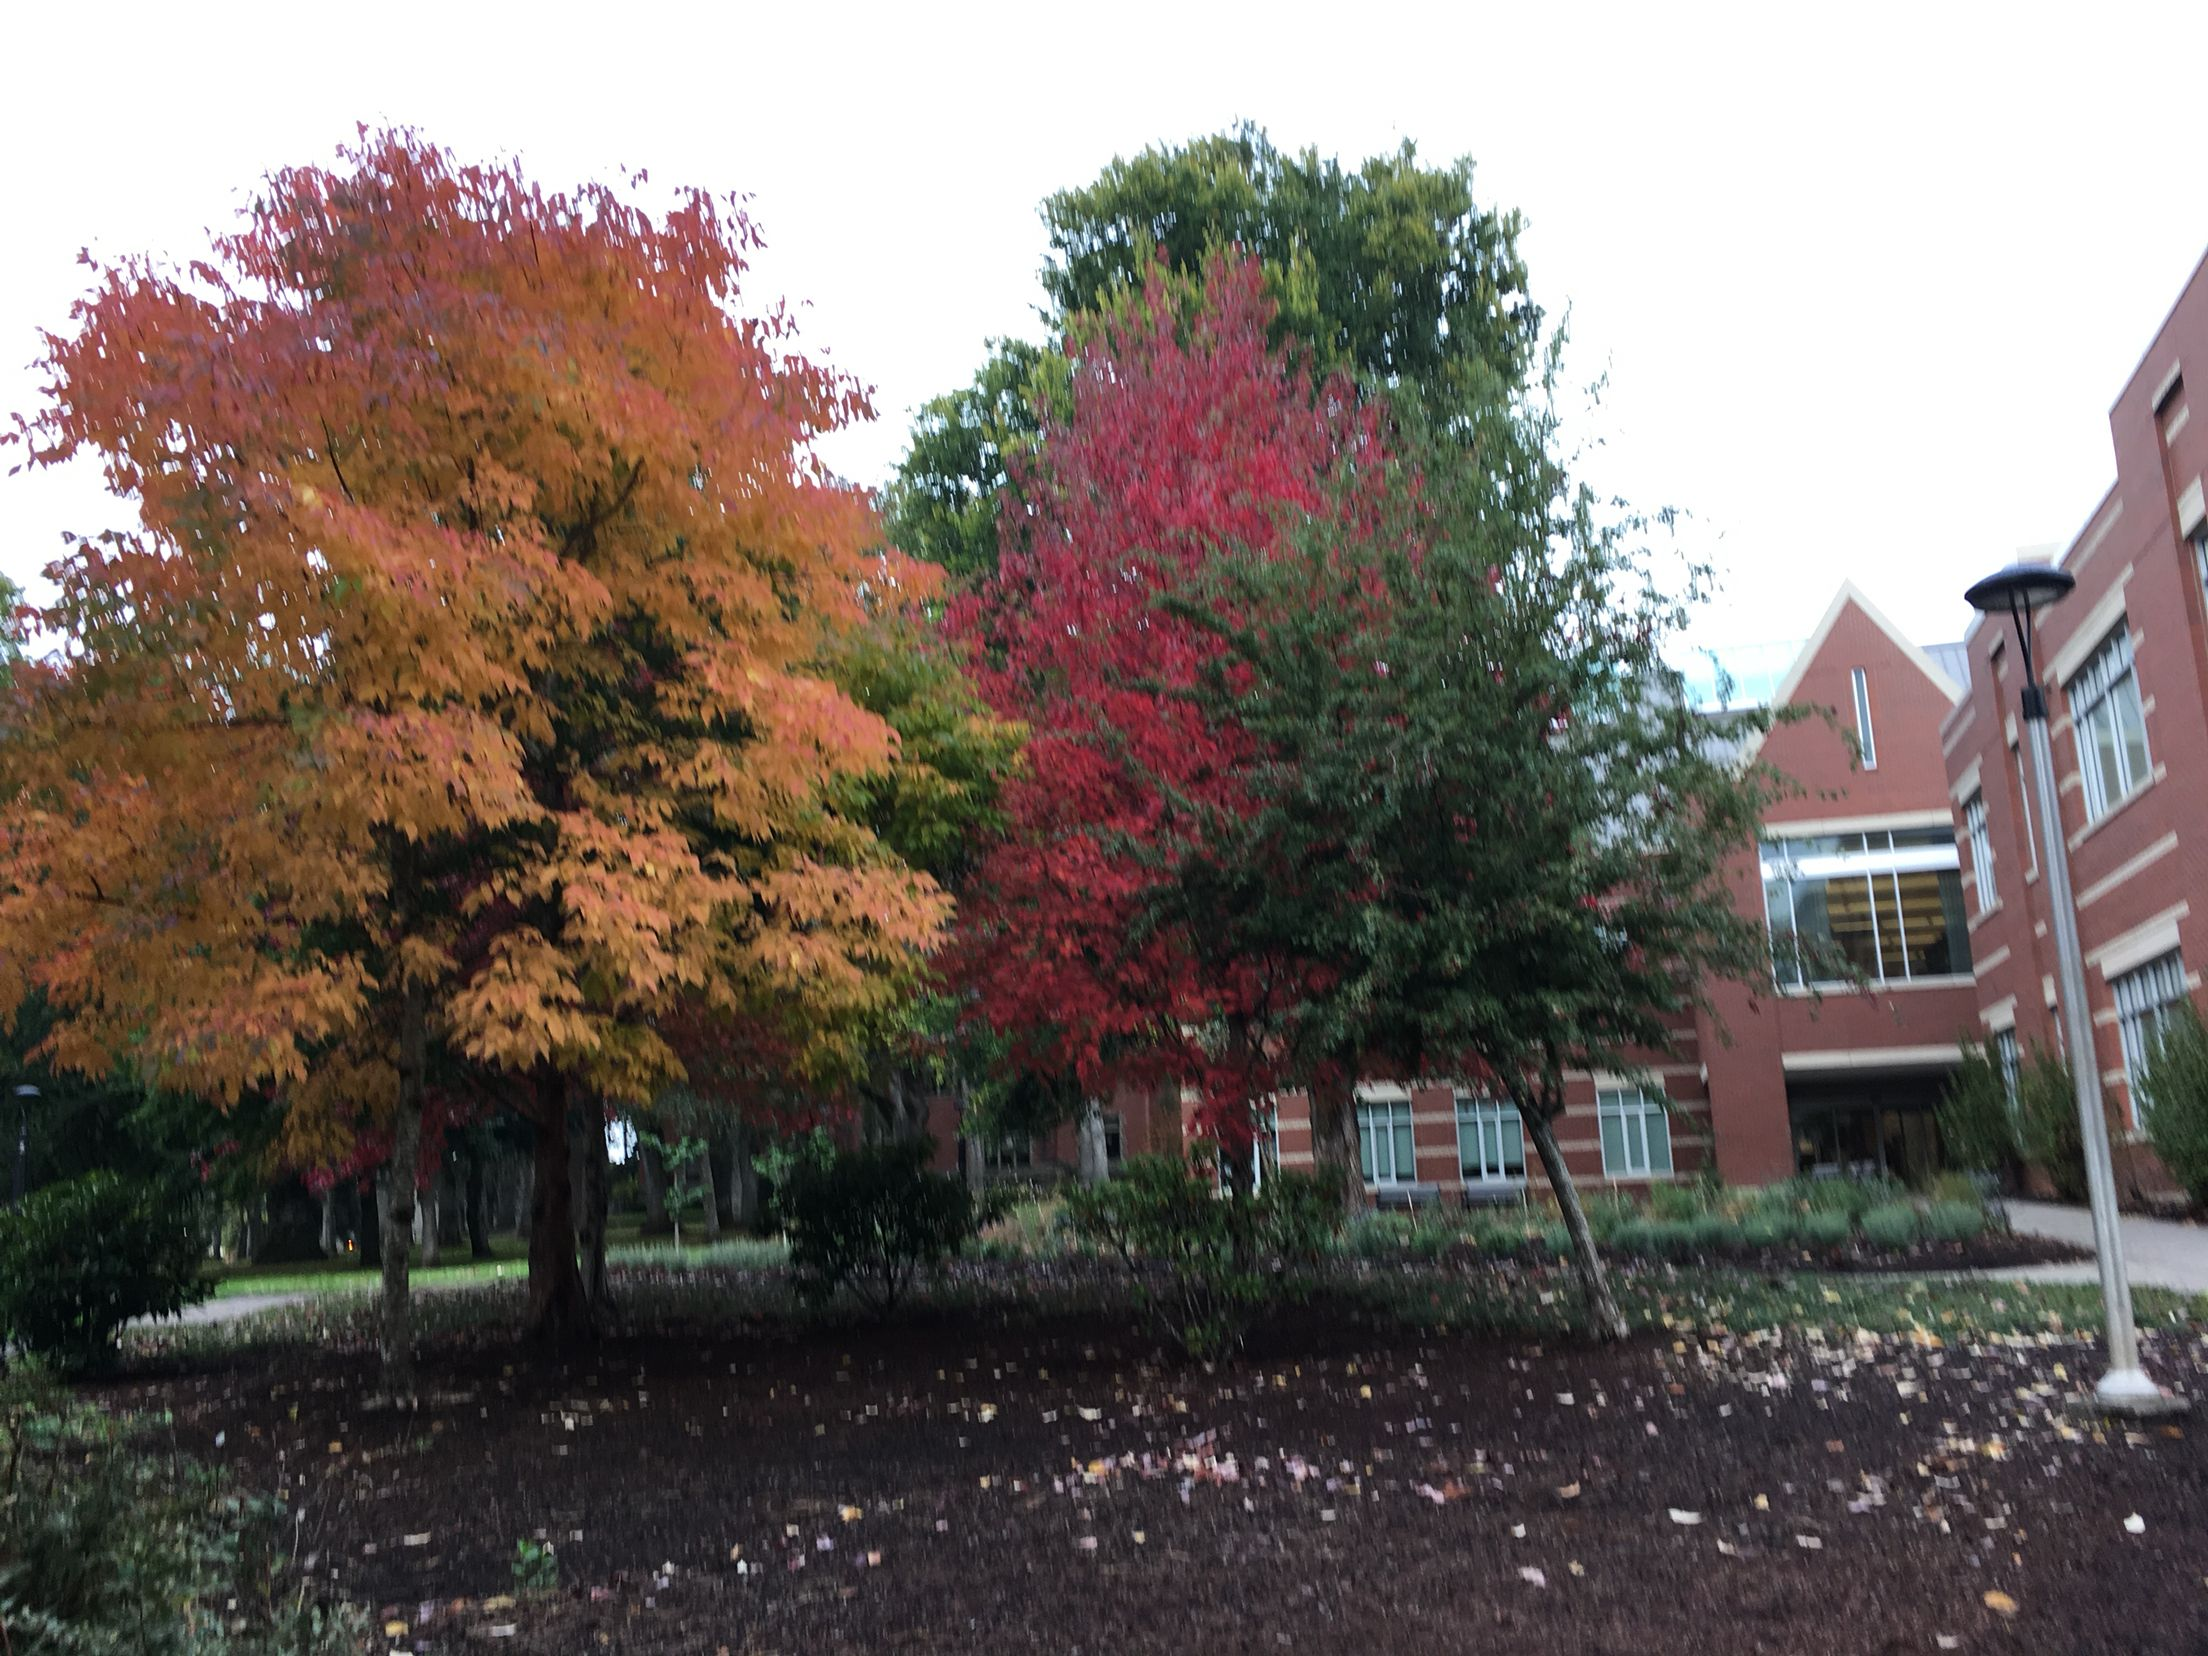 On the campus of Pacific University Forest Grove, Oregon